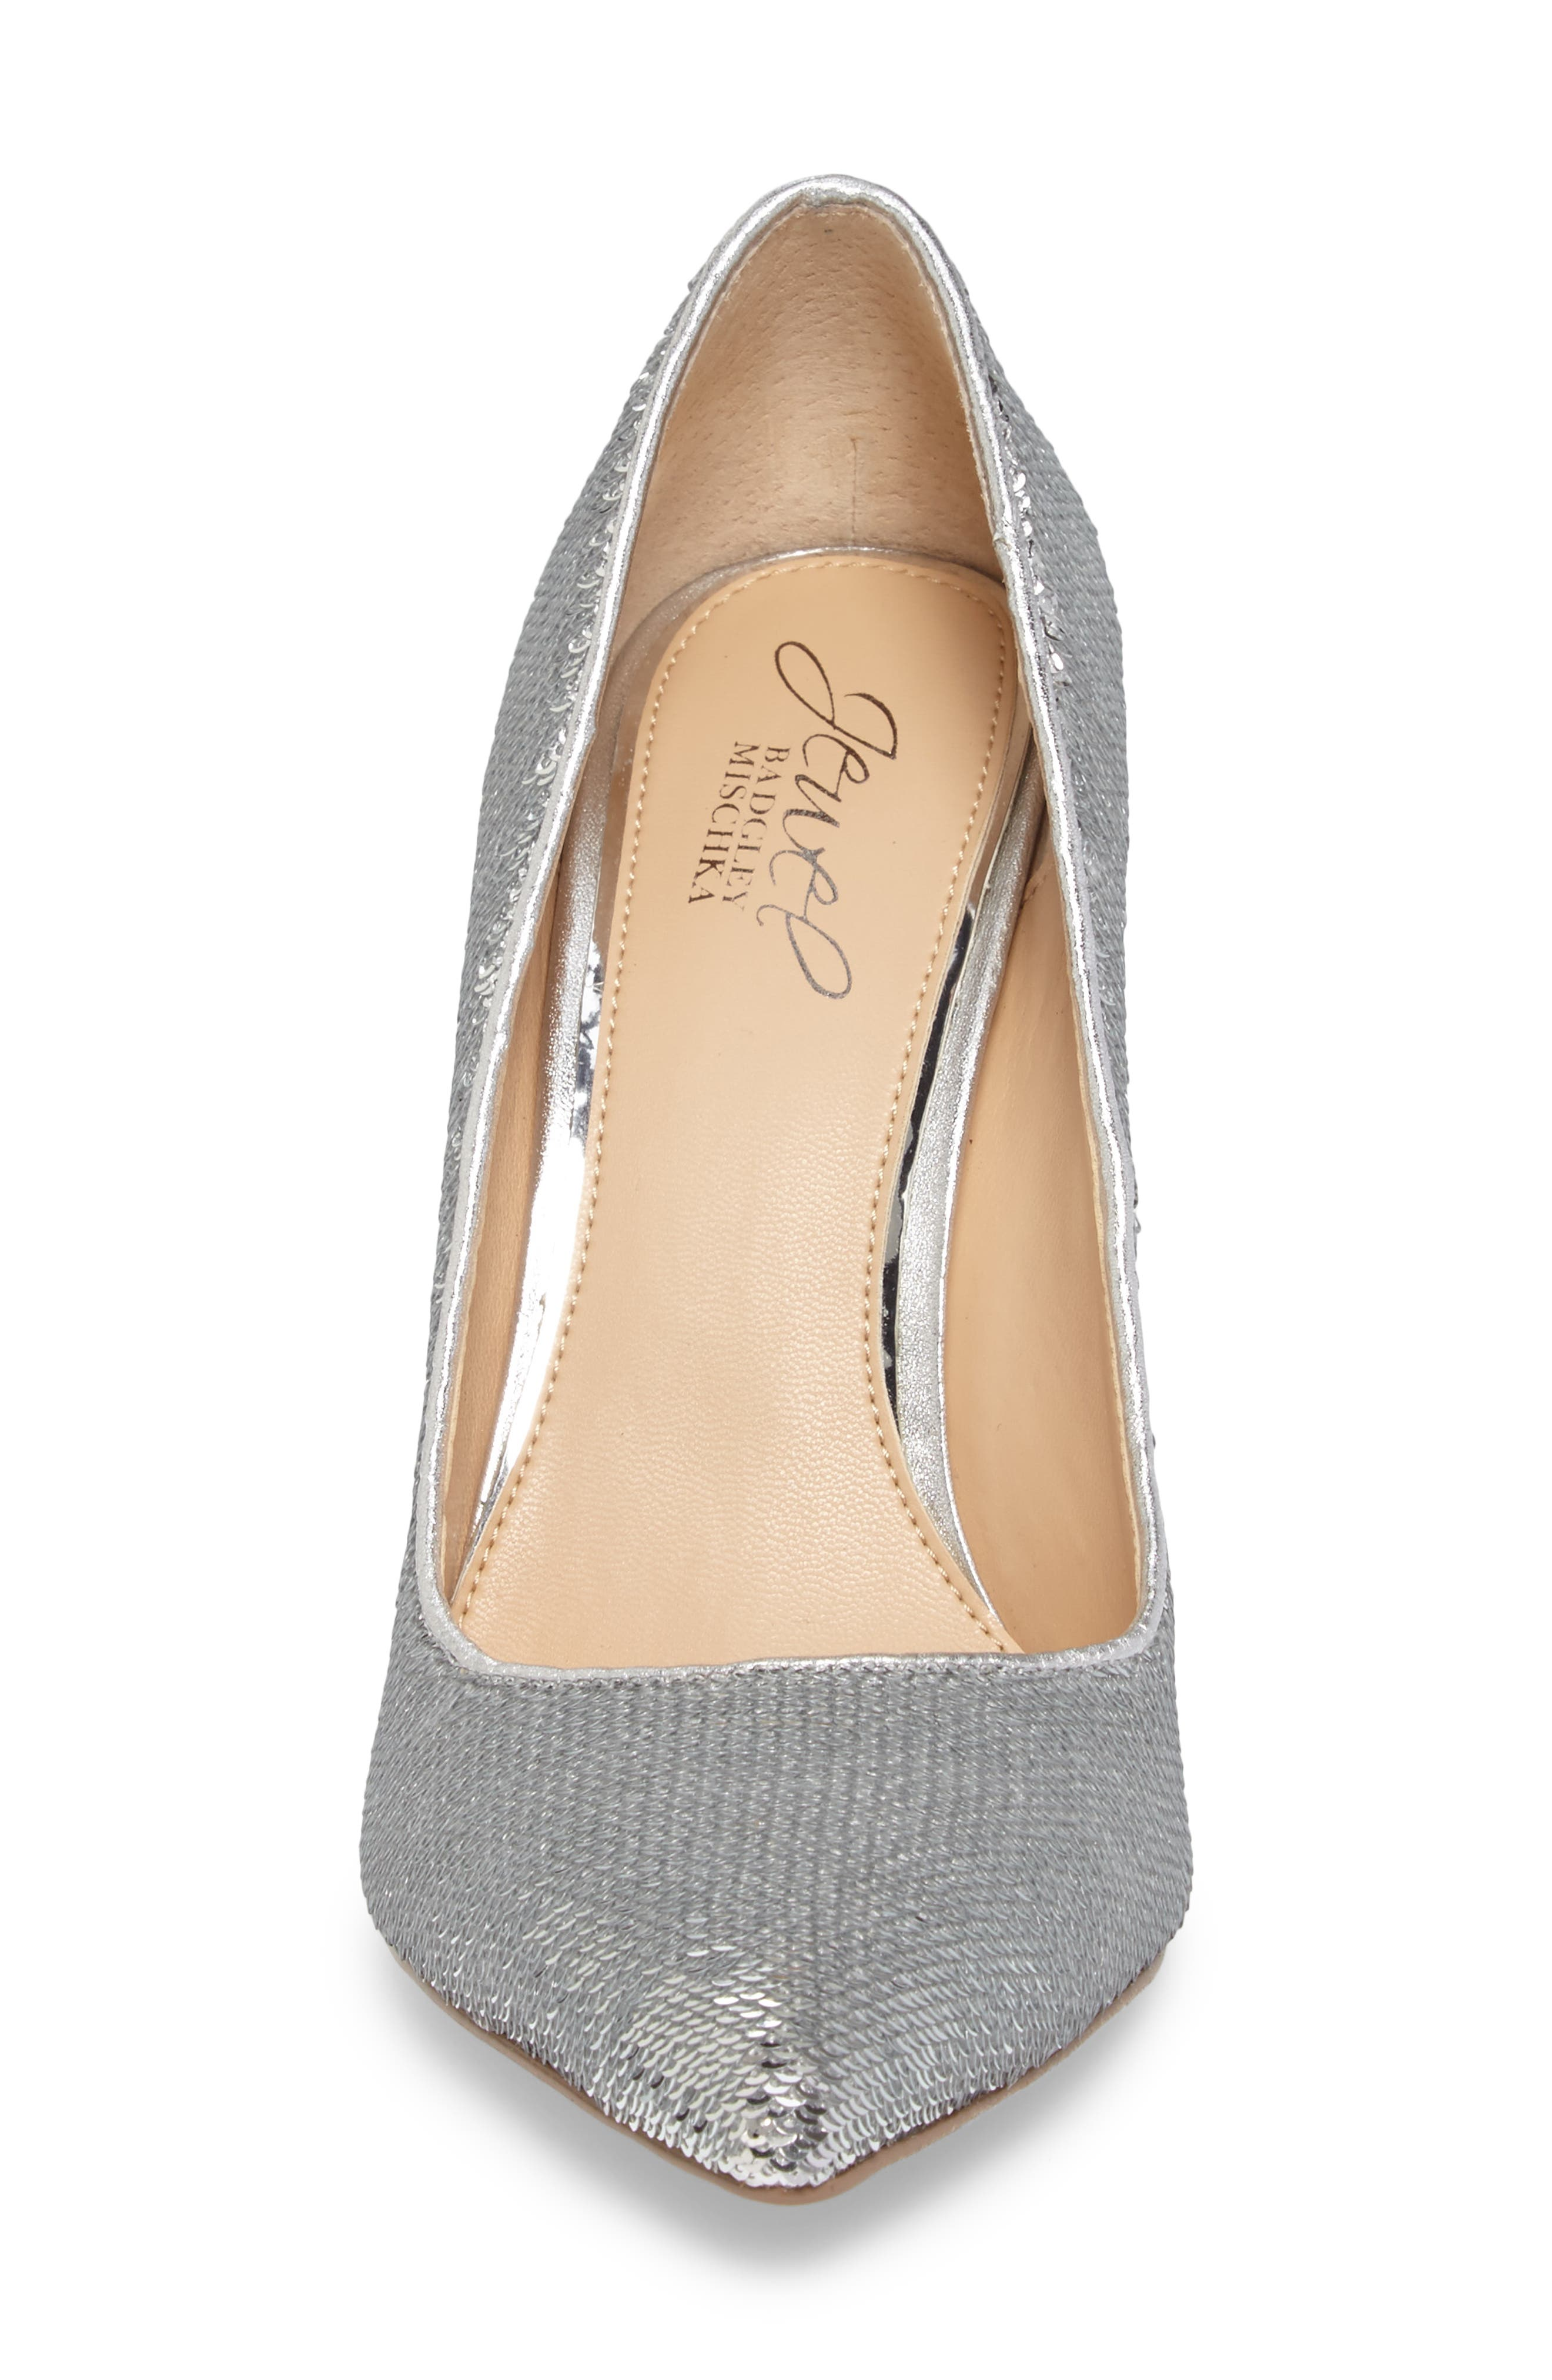 Luxury Pointy Toe Pump,                             Alternate thumbnail 4, color,                             Silver Leather